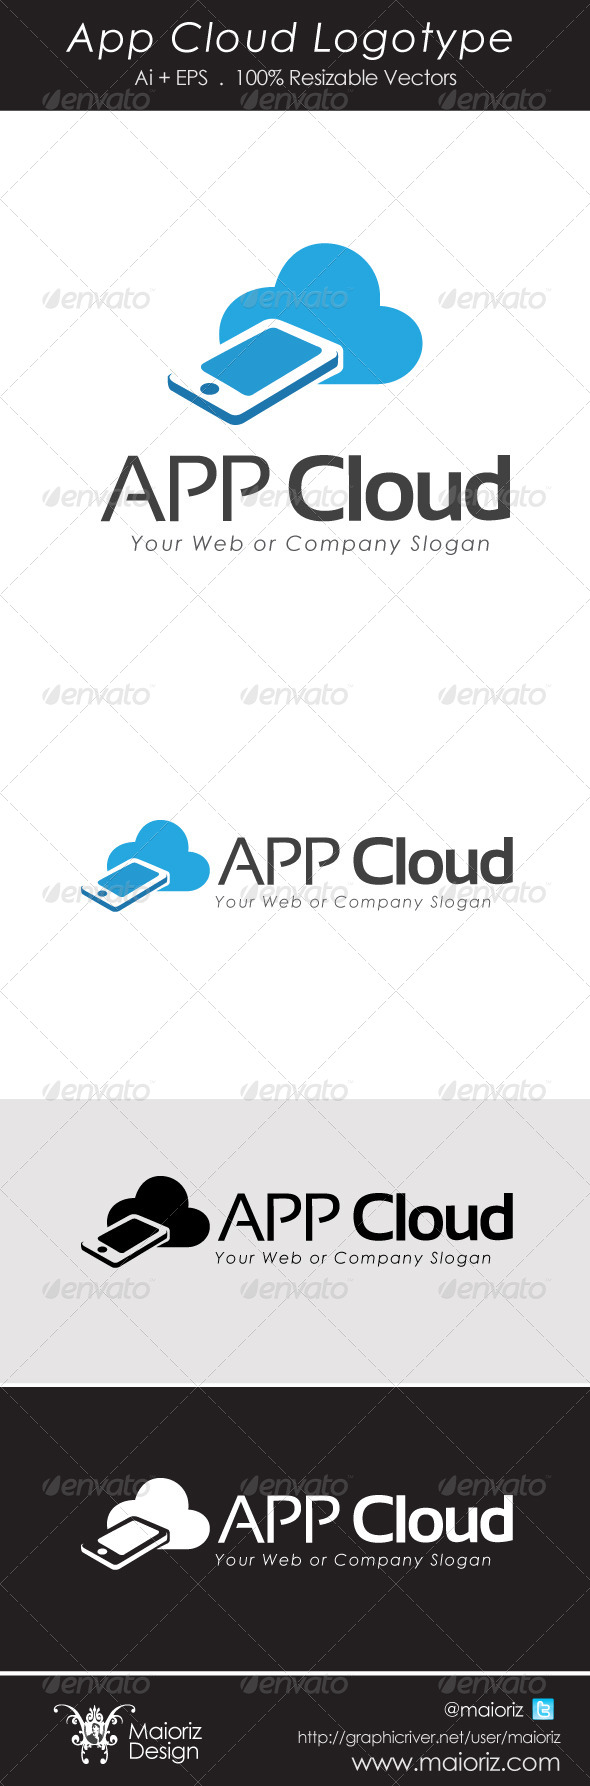 App Cloud Logotype - Objects Logo Templates